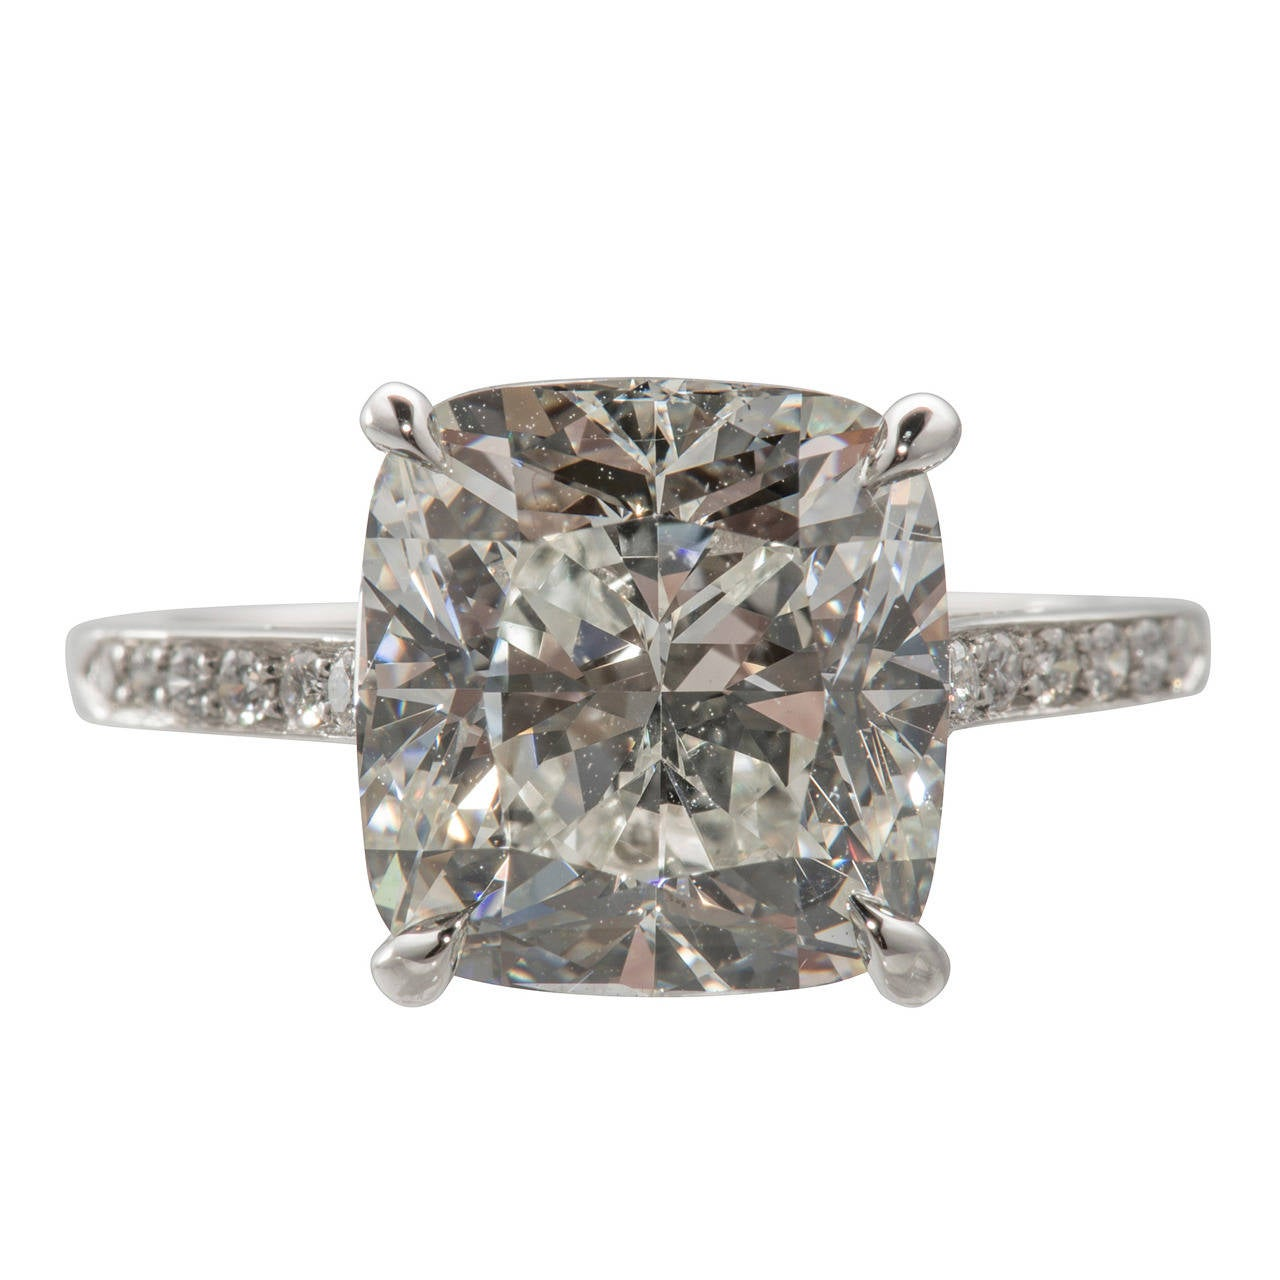 GIA Cert Cushion Cut 6.04 Carat Diamond  Engagement Ring For Sale